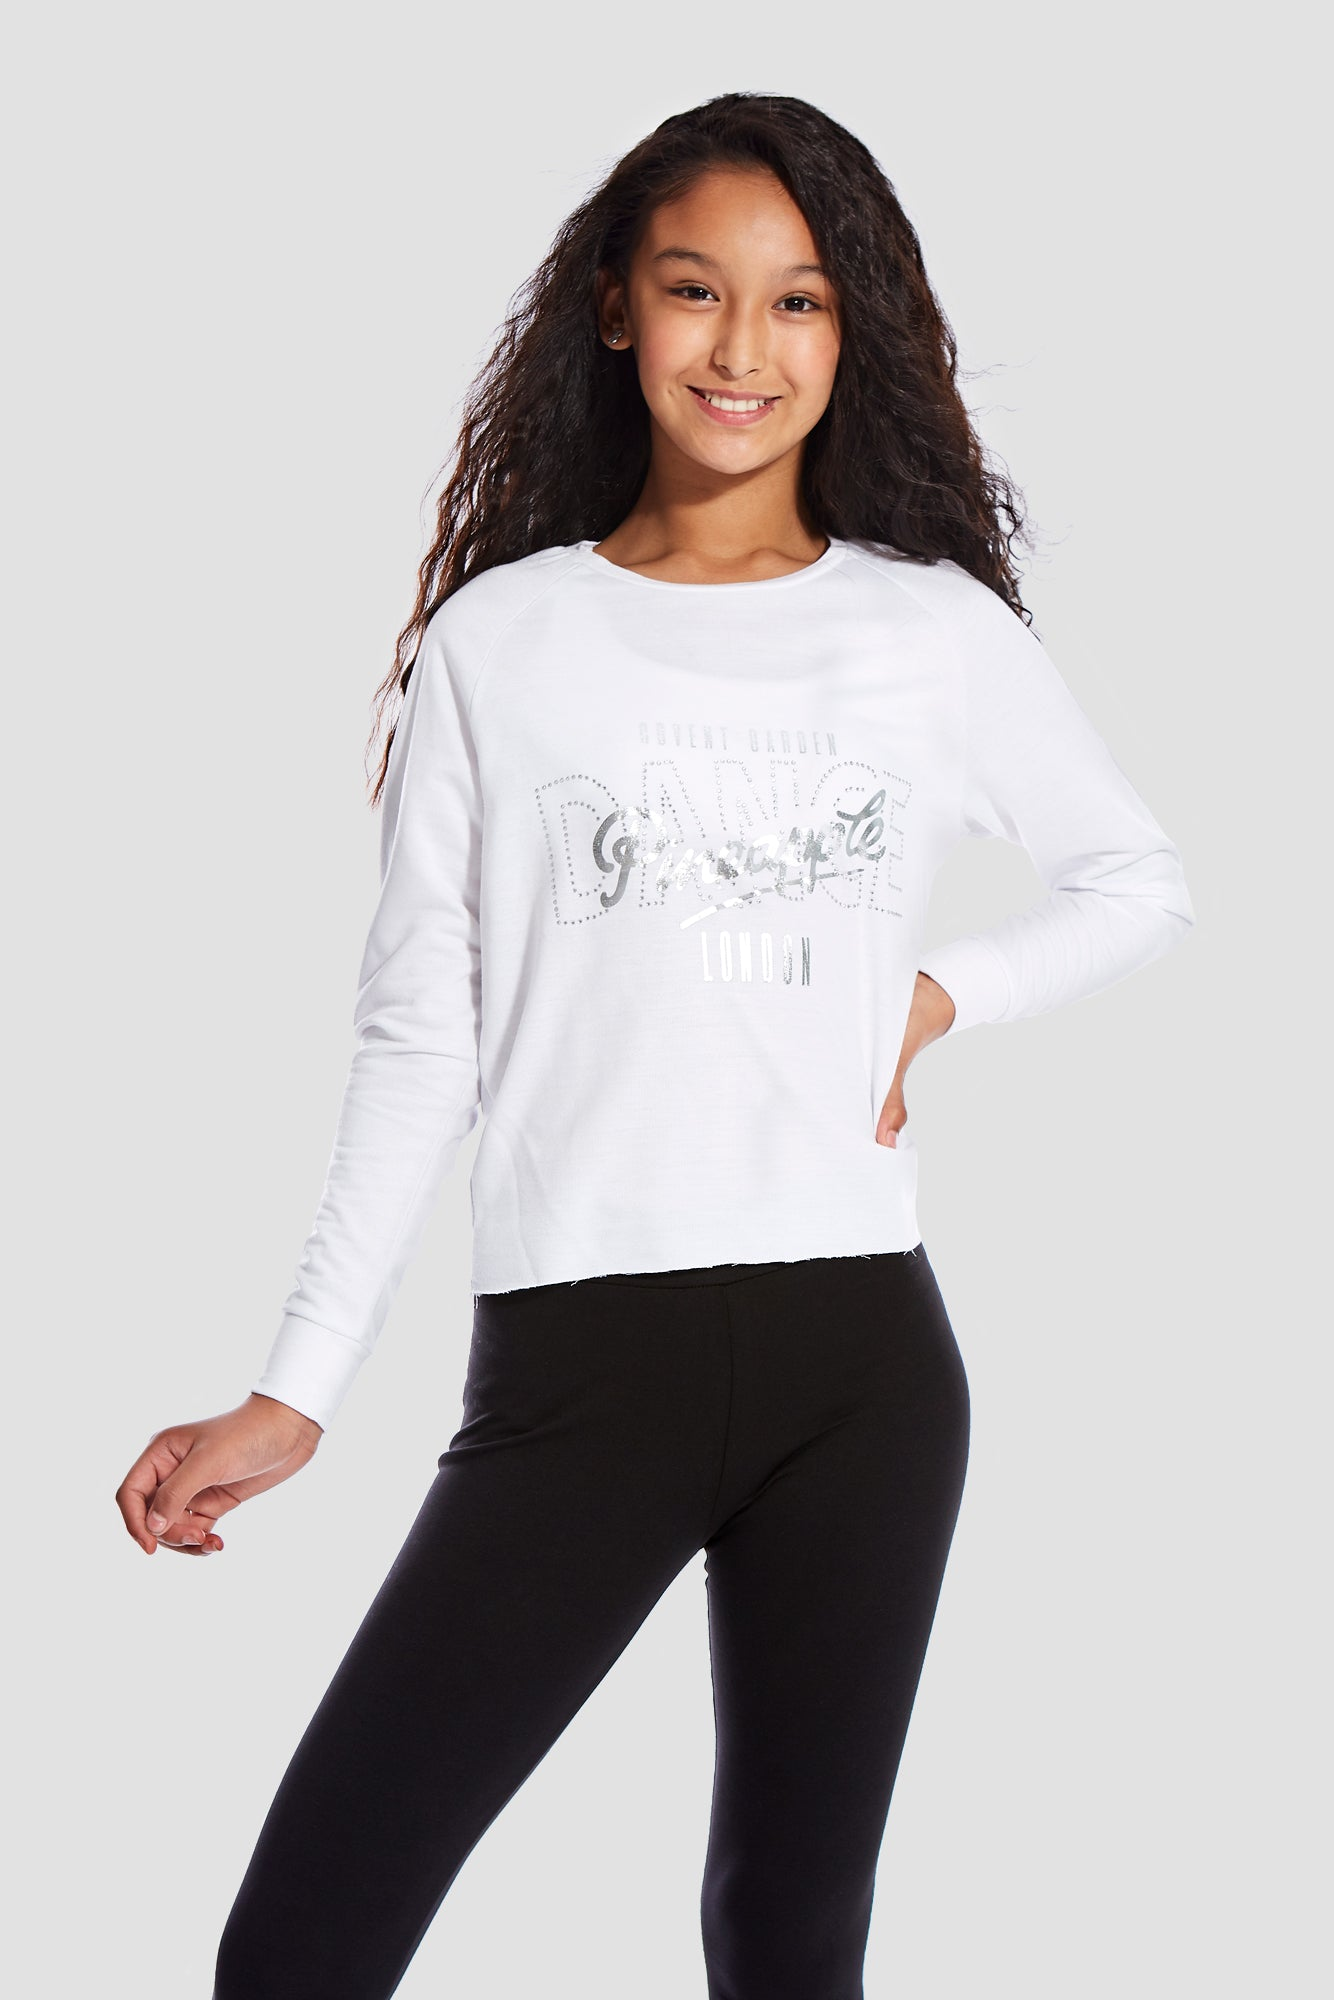 Pineapple Dancewear Girls' White Long Sleeve Slouchy Top